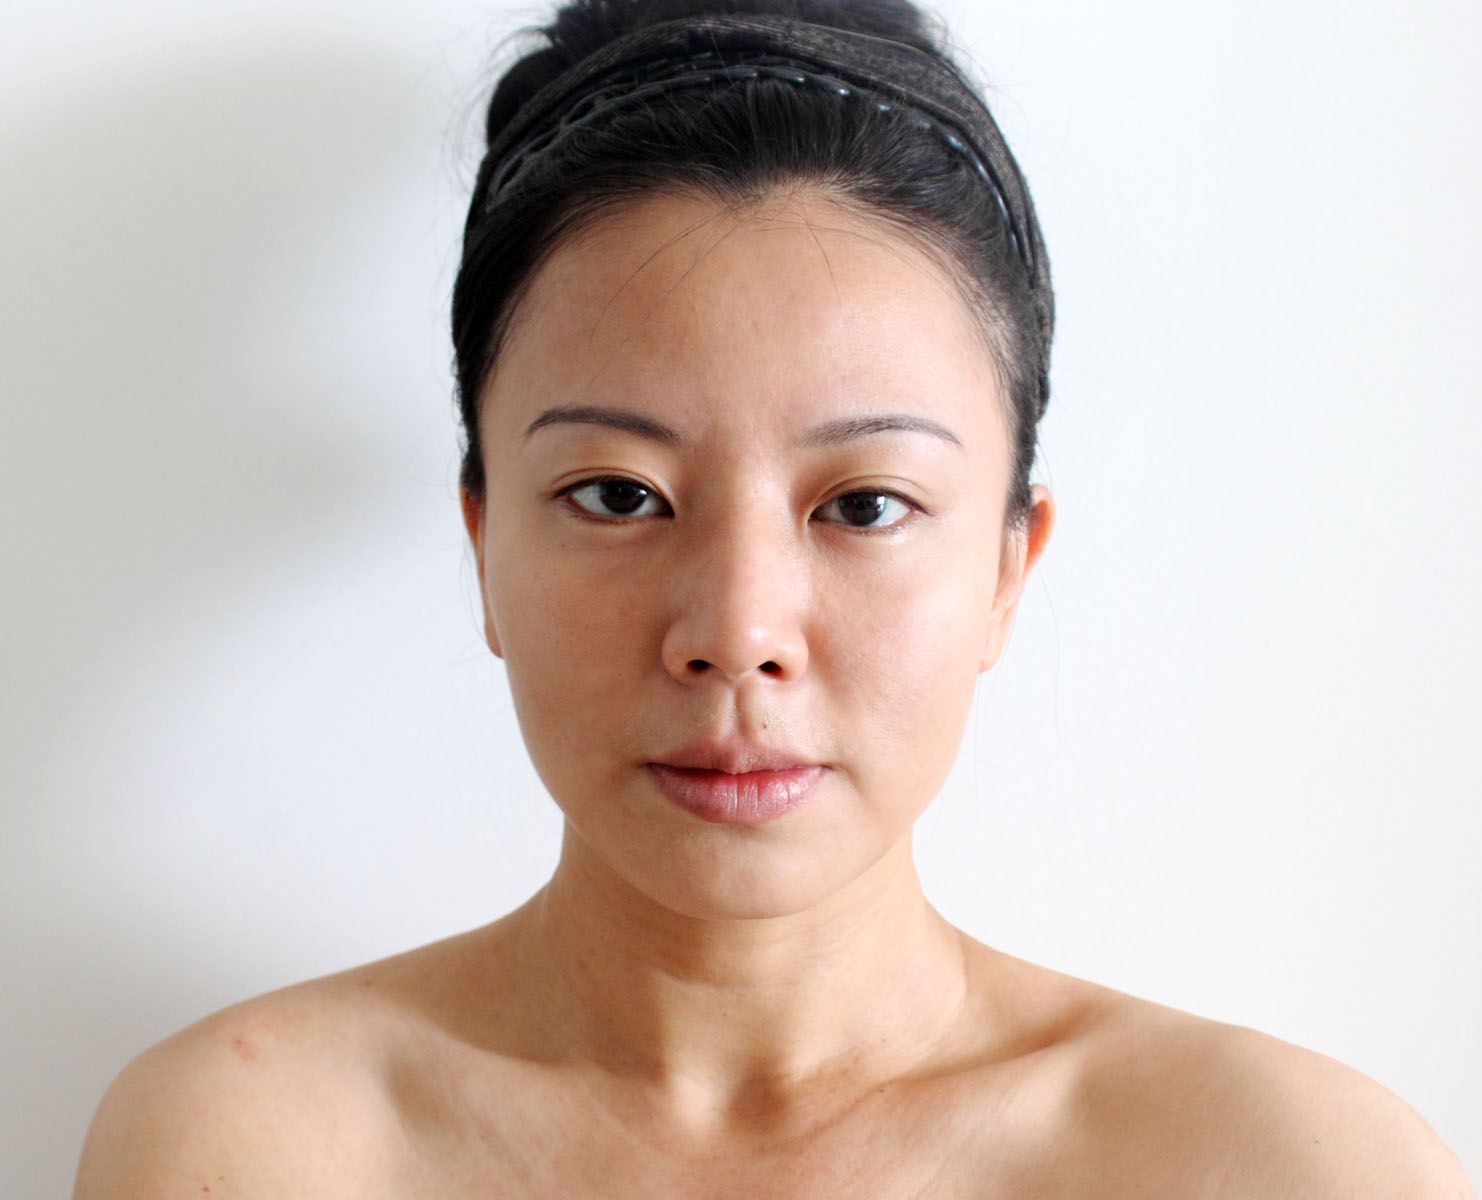 Women without makeup